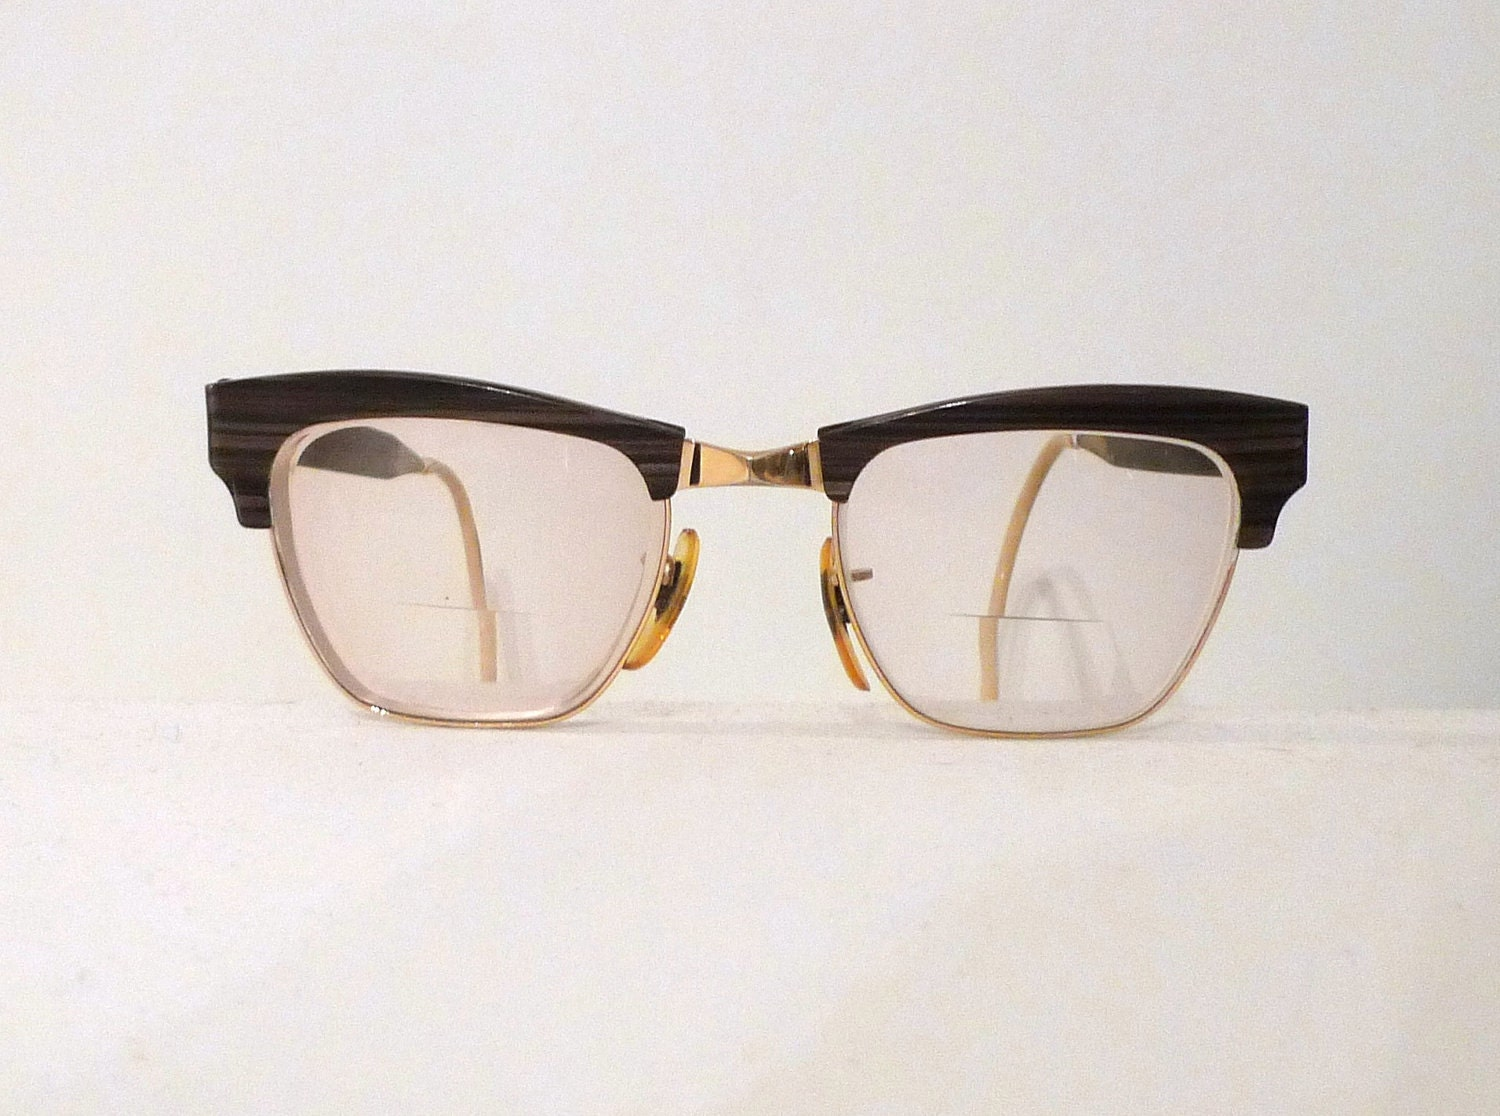 Eyeglass Frames With Cable Temples : CABLE TEMPLE EYEGLASS FRAMES - Eyeglasses Online